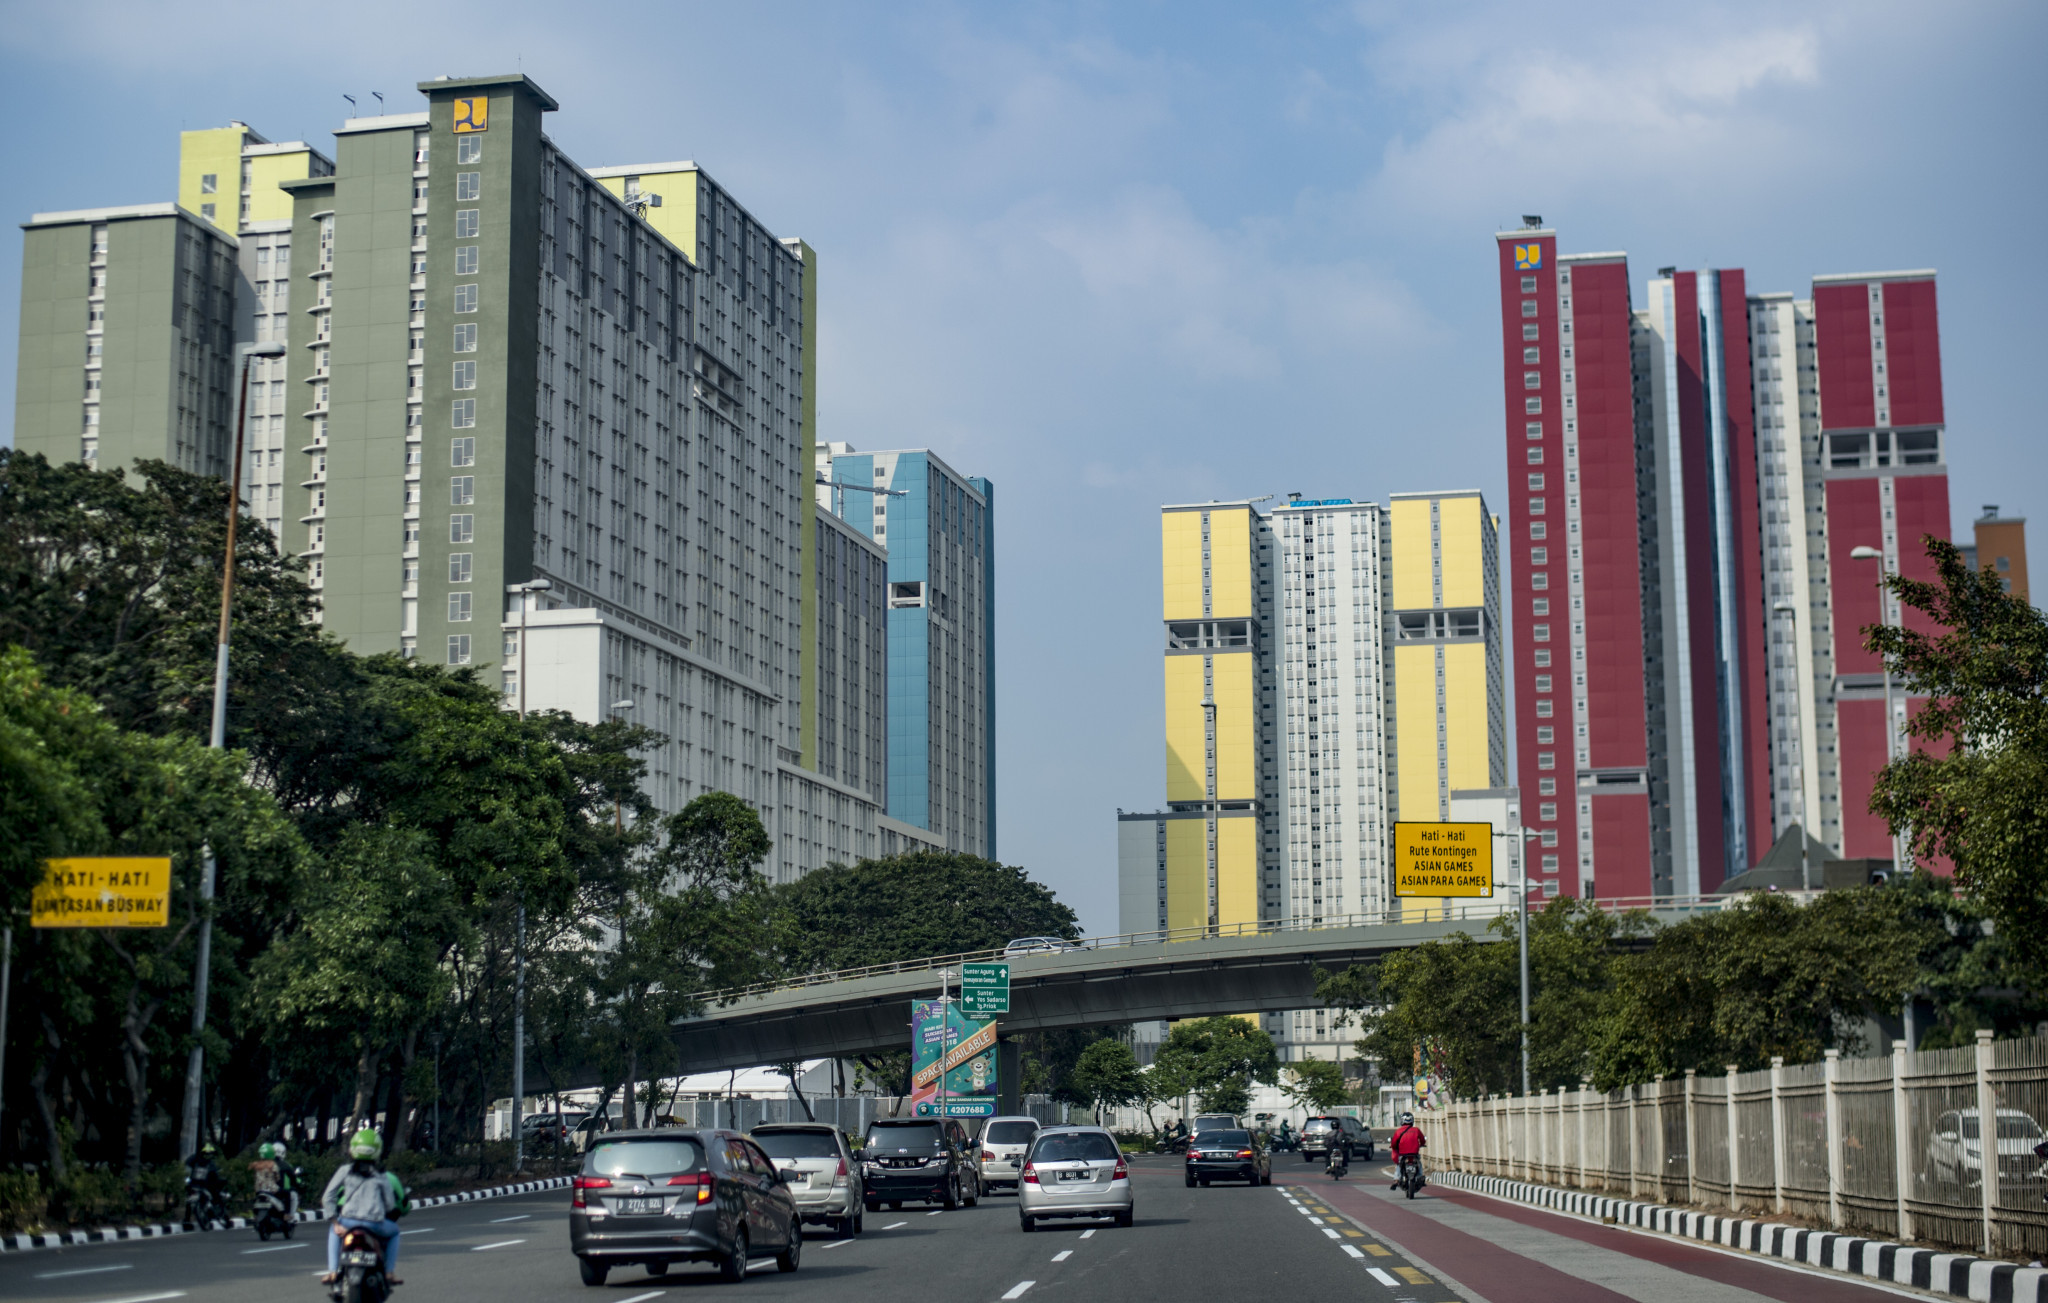 Traffic commutes next to the newly-completed Asian Games Athletes' Village in Kemayoran district, central Jakarta - it is hoped closing schools during the event will help reduce congestion ©Getty Images